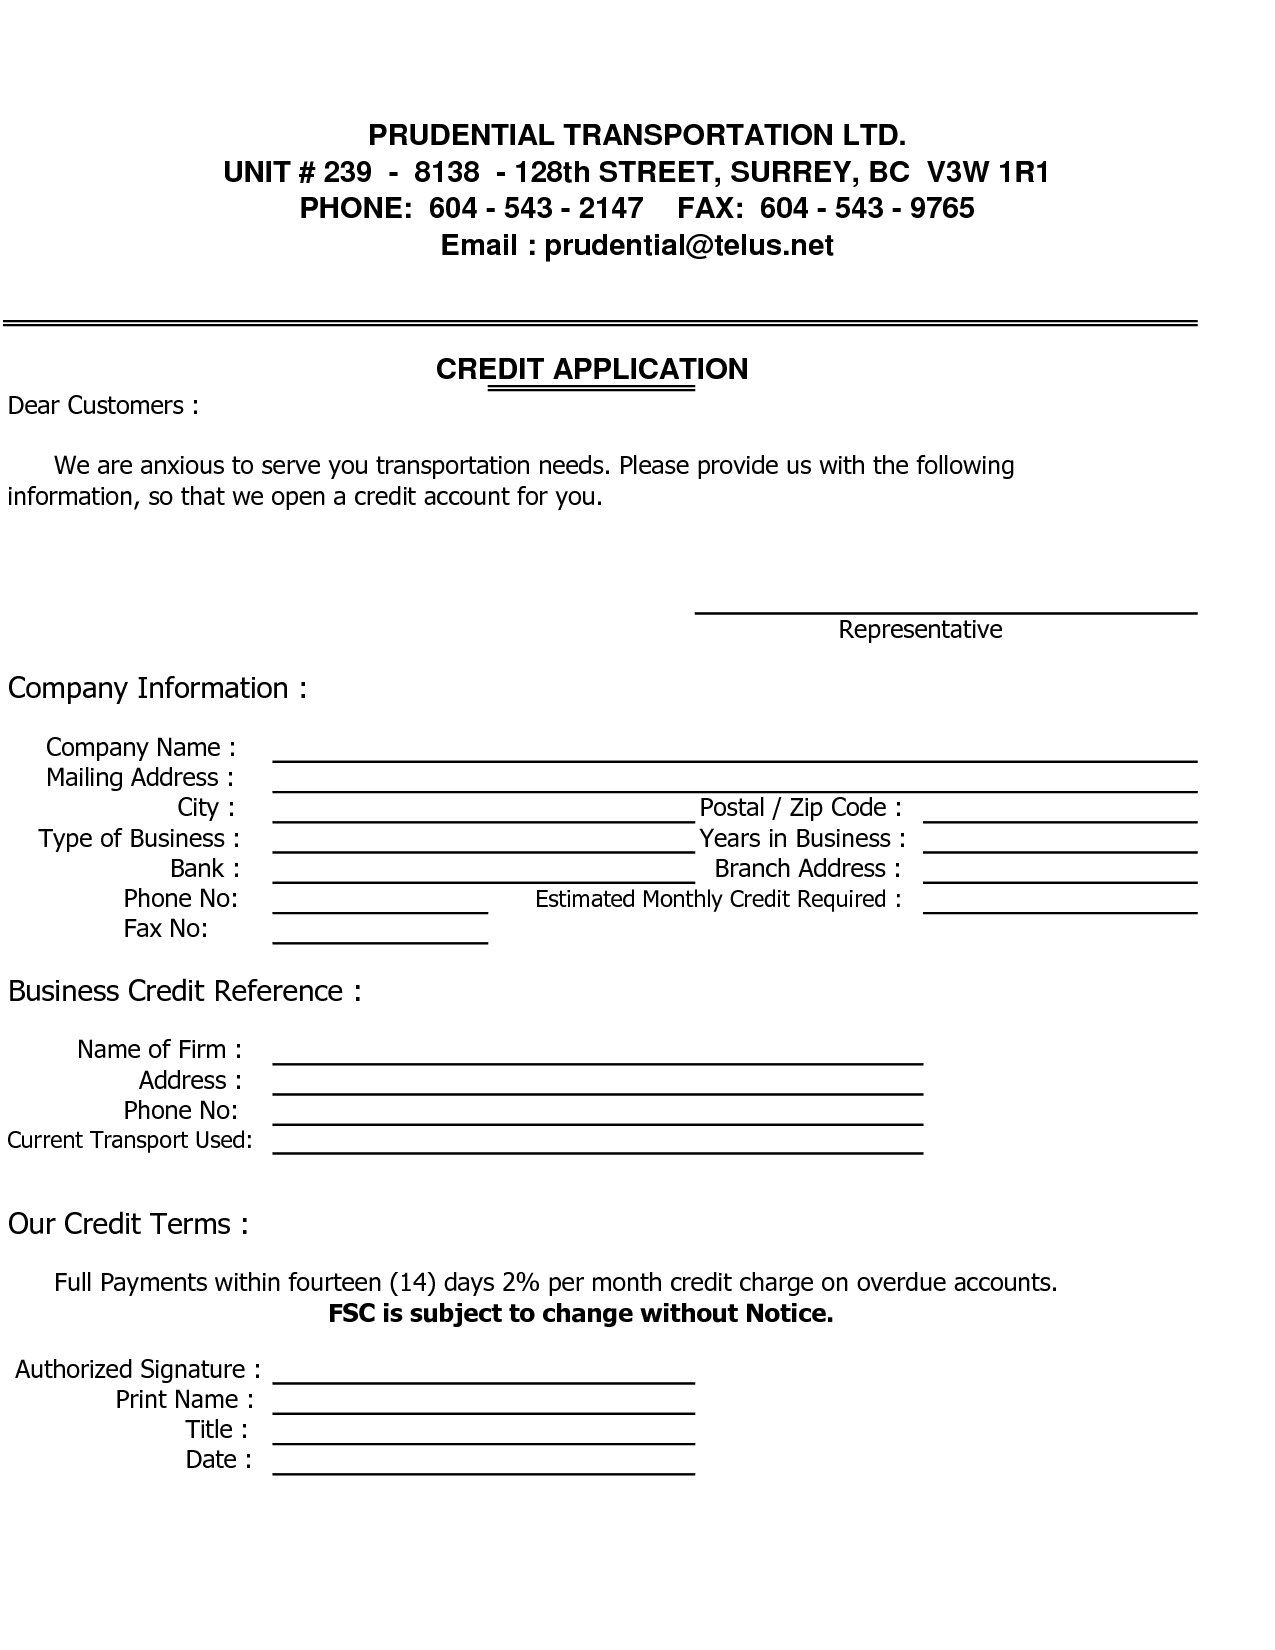 Business credit reference form charlotte clergy coalition business credit reference form kleoachfix wajeb Images